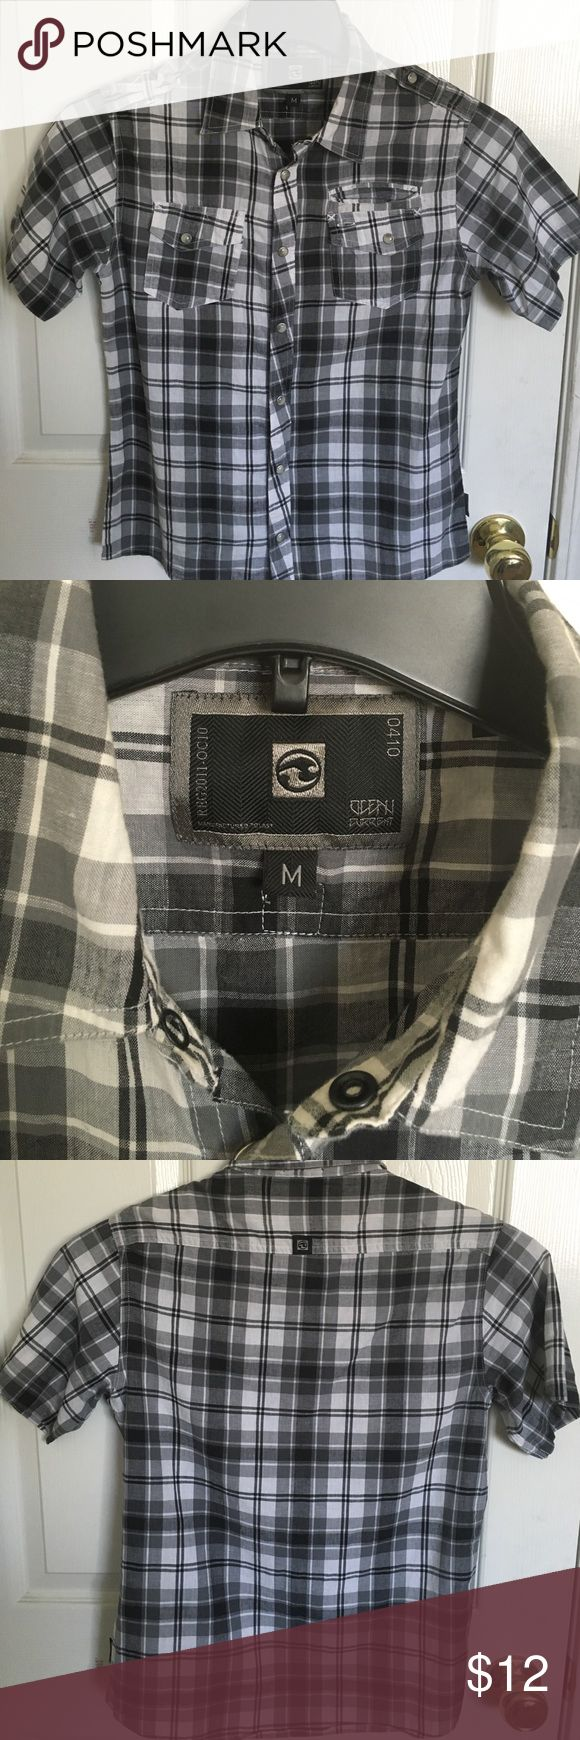 Ocean Current Snap button up shirt in good condition. 100% cotton. Ocean Current Shirts & Tops Button Down Shirts